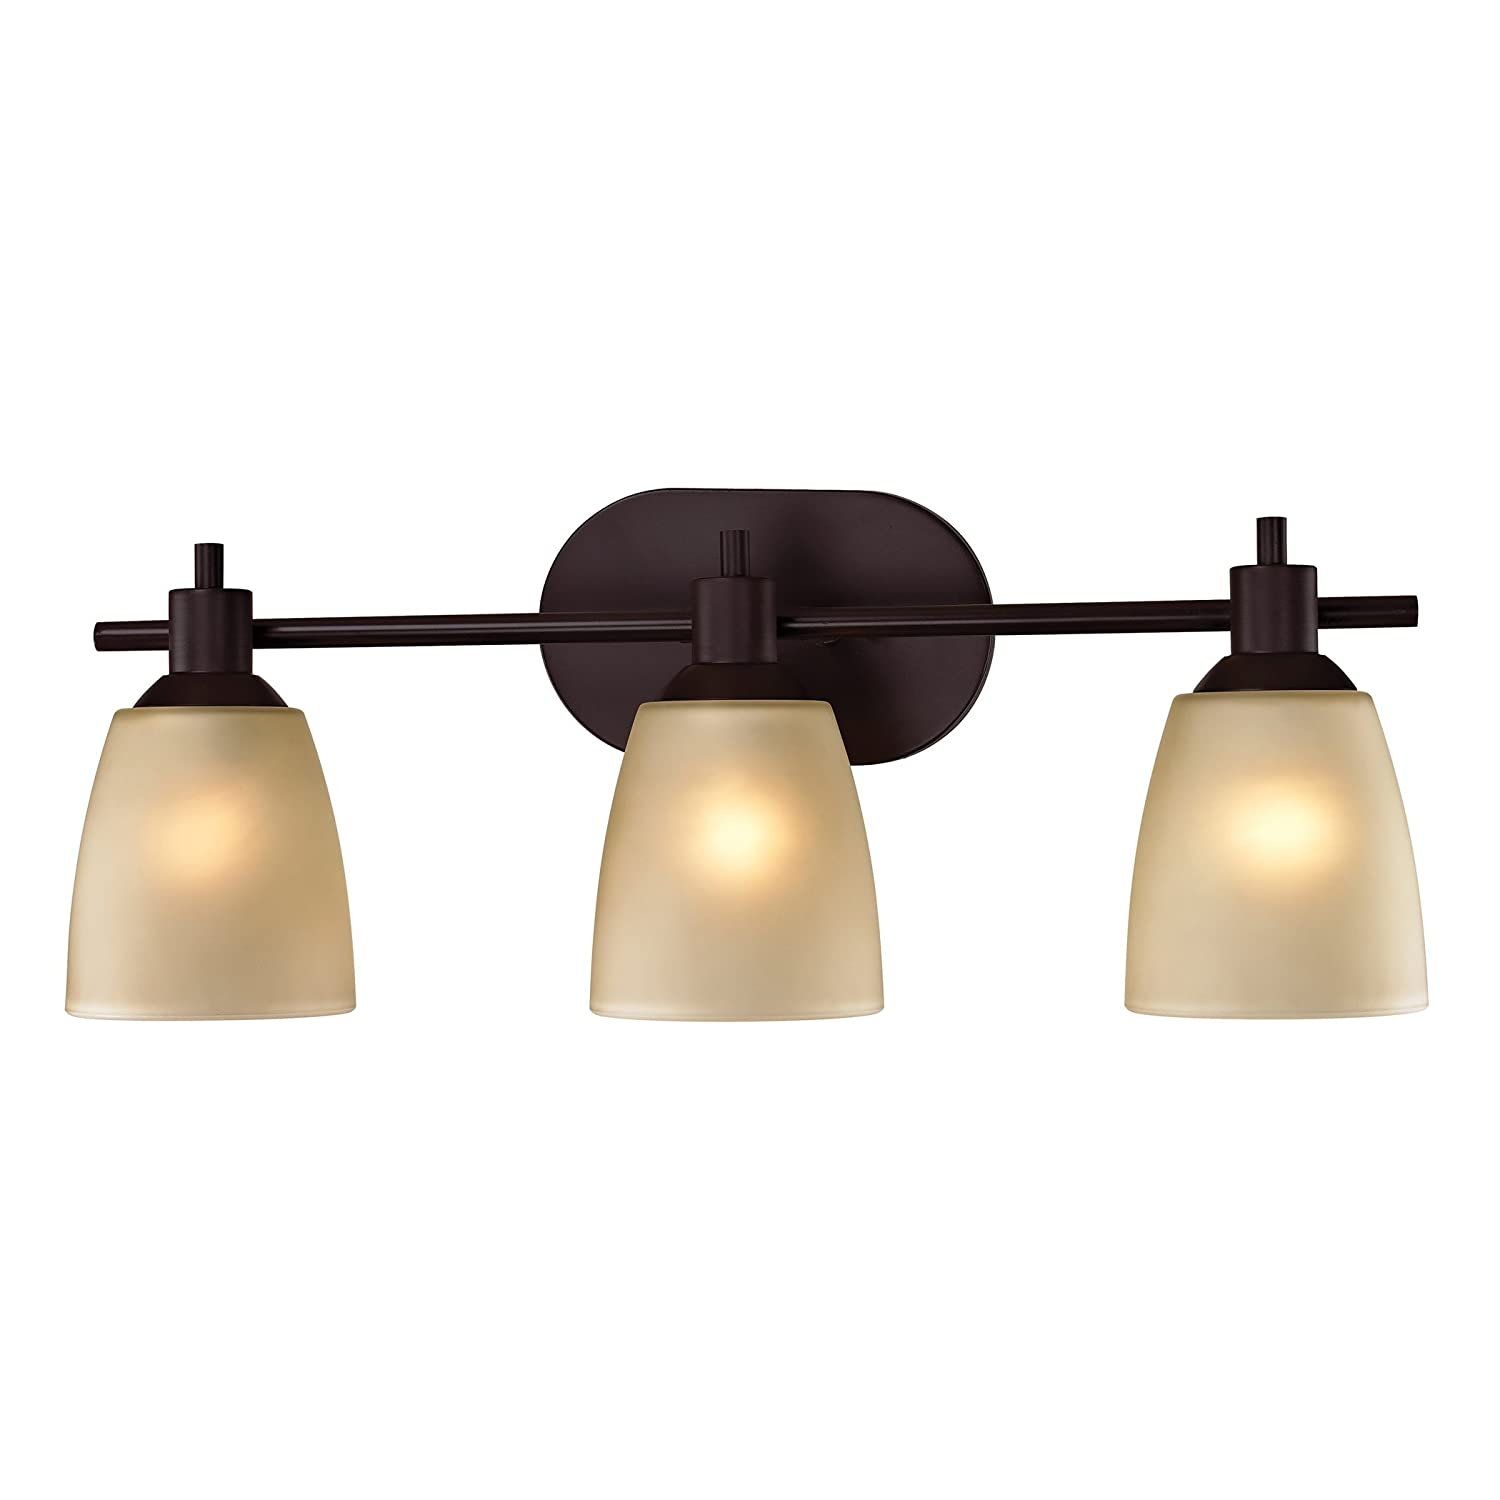 Thomas Lighting Jackson 3-light Bath Bar, Oil Rubbed Bronze Finish ...